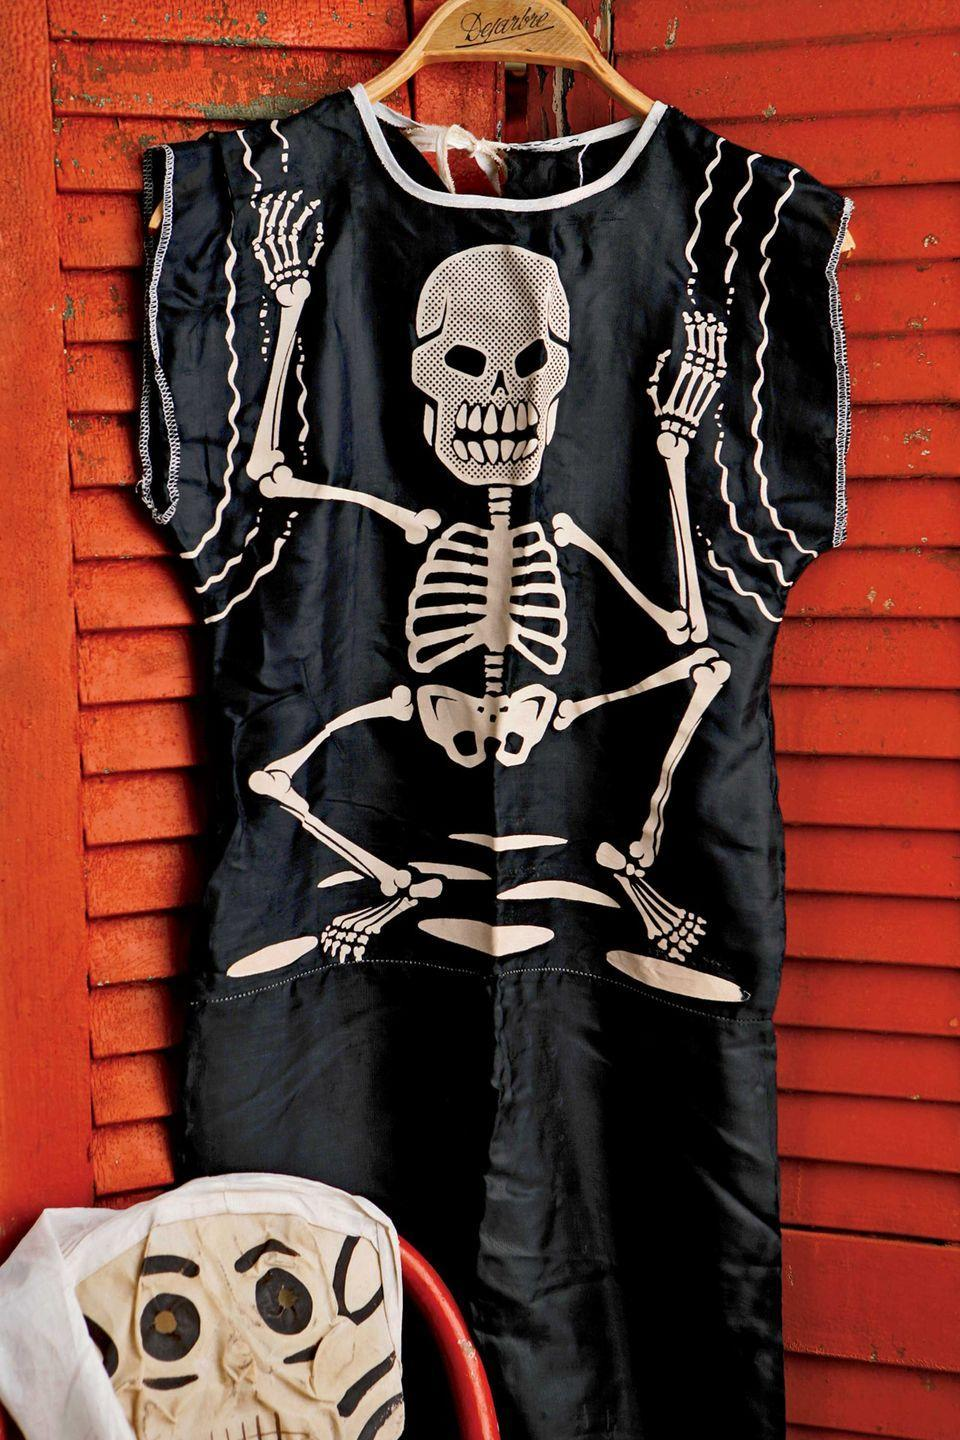 <p>Beginning in the 1940s, manufacturers such as such as Ben Cooper Inc. began making costumes and selling them through Sears, JC Penney, Woolworths, and local five-and-tens for as little as $1.25. This skeleton outfit and hooded muslin mask is from the early 1950s.</p>